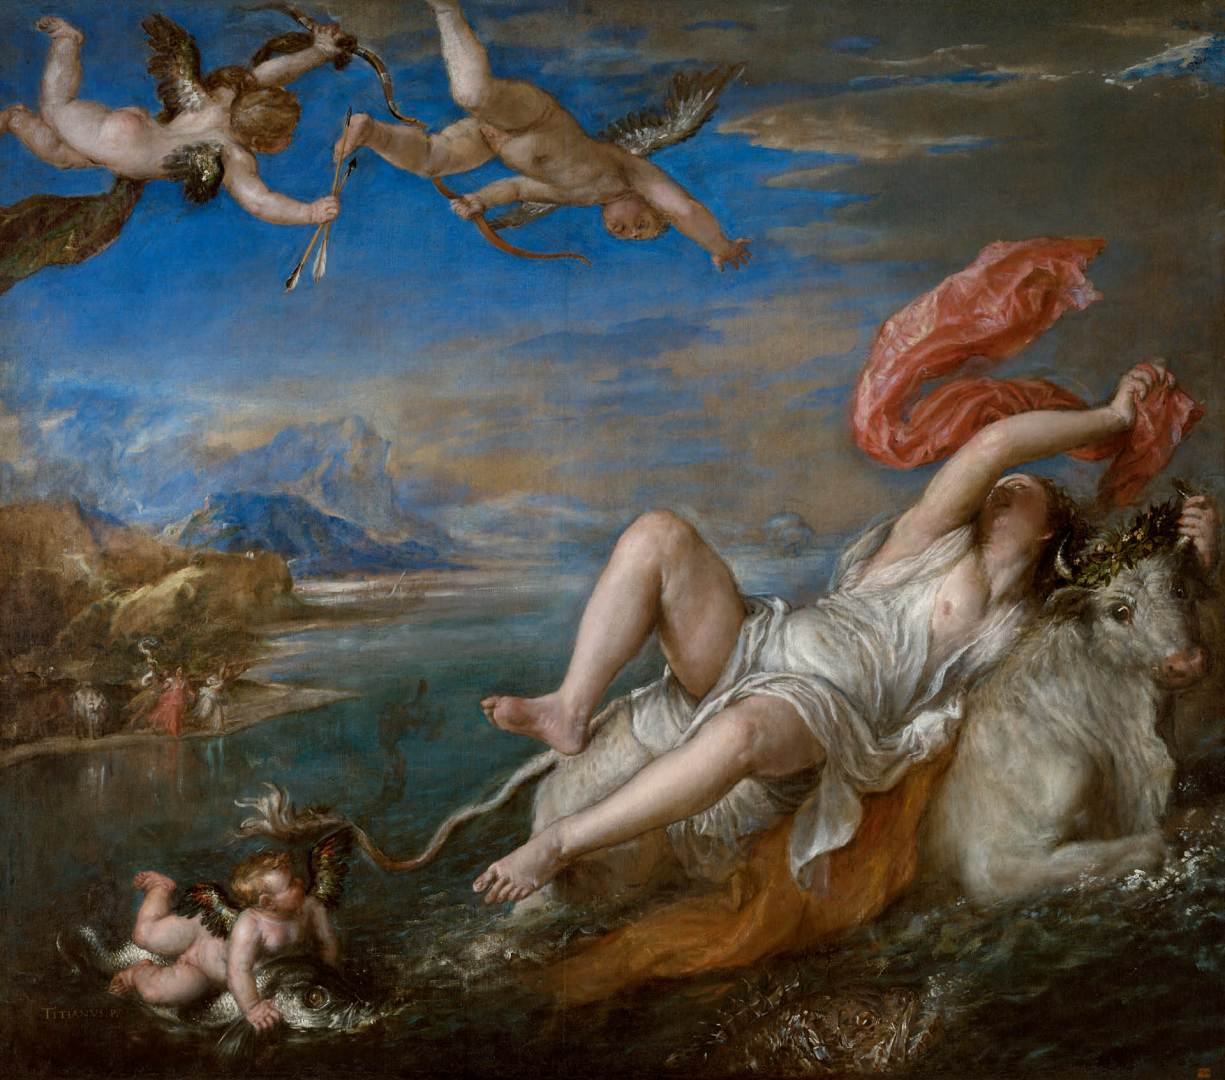 Titian: Love, Desire, Death | Press releases | National Gallery ...